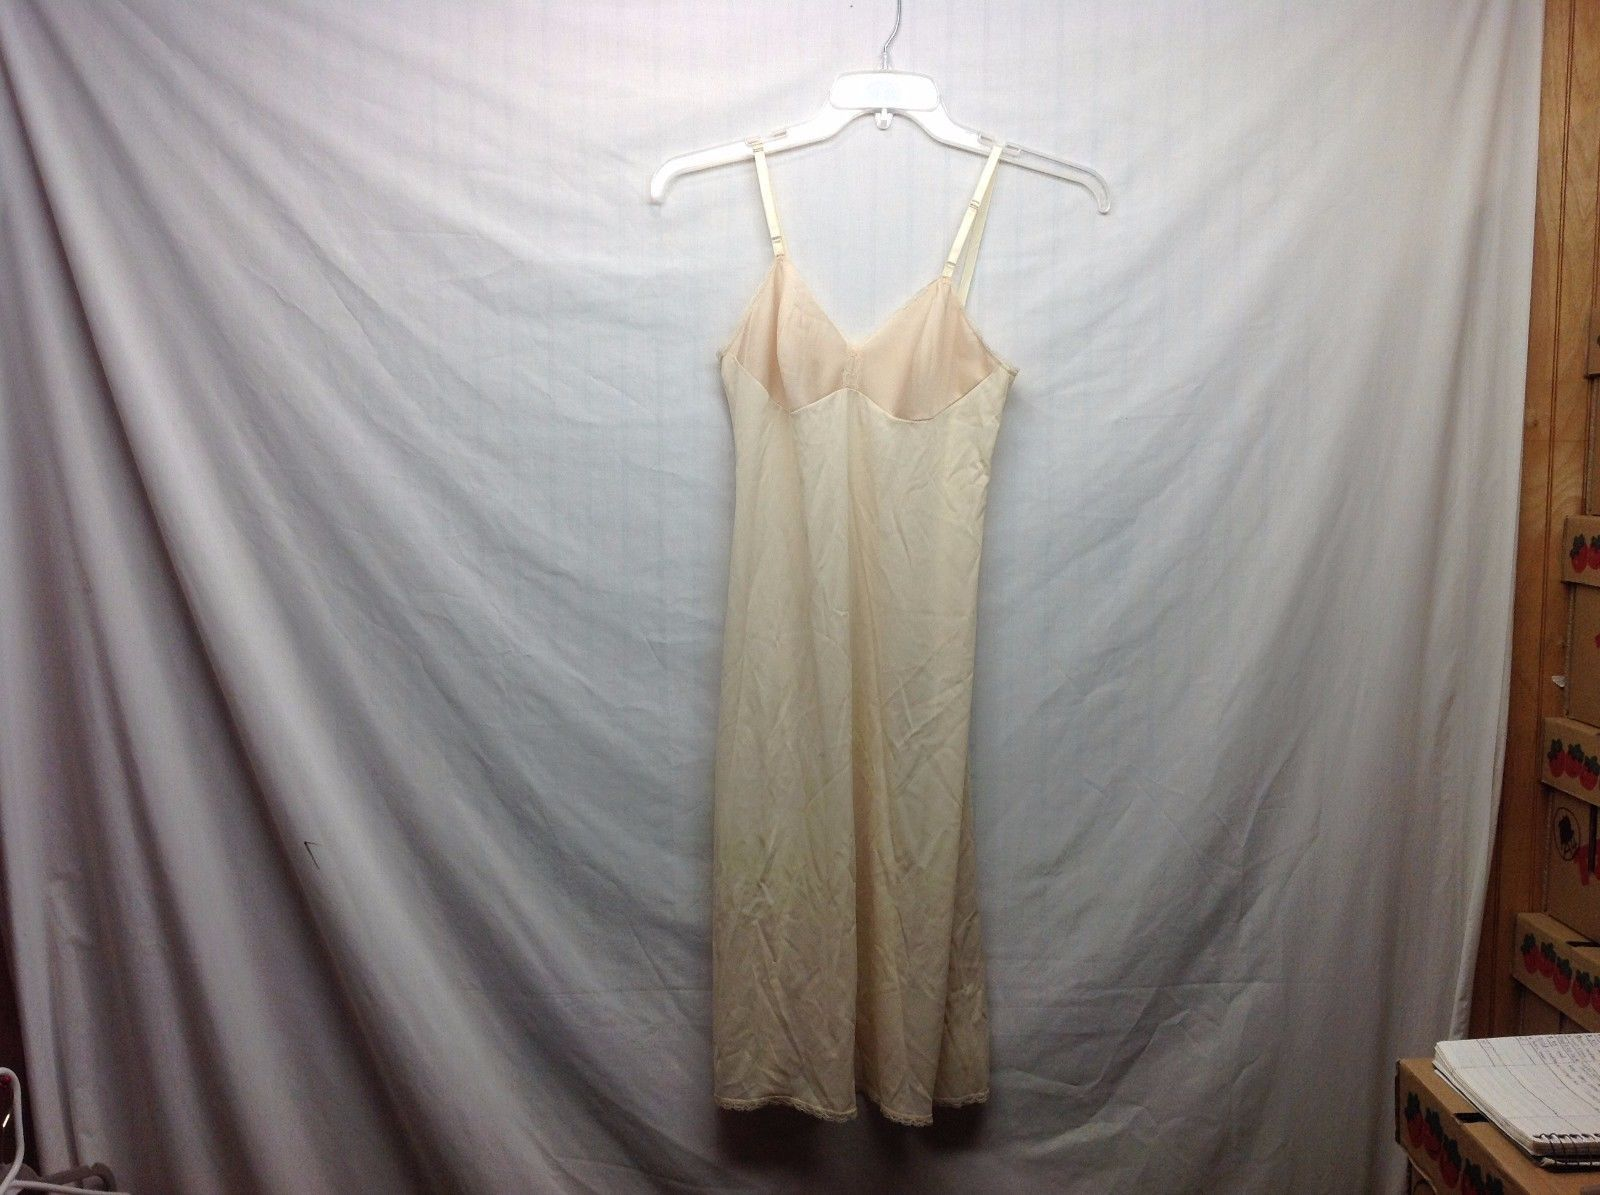 Vanity Fair Semi Sheer Ivory/Champagne Slip Dress w Lace Trim Sz 32L